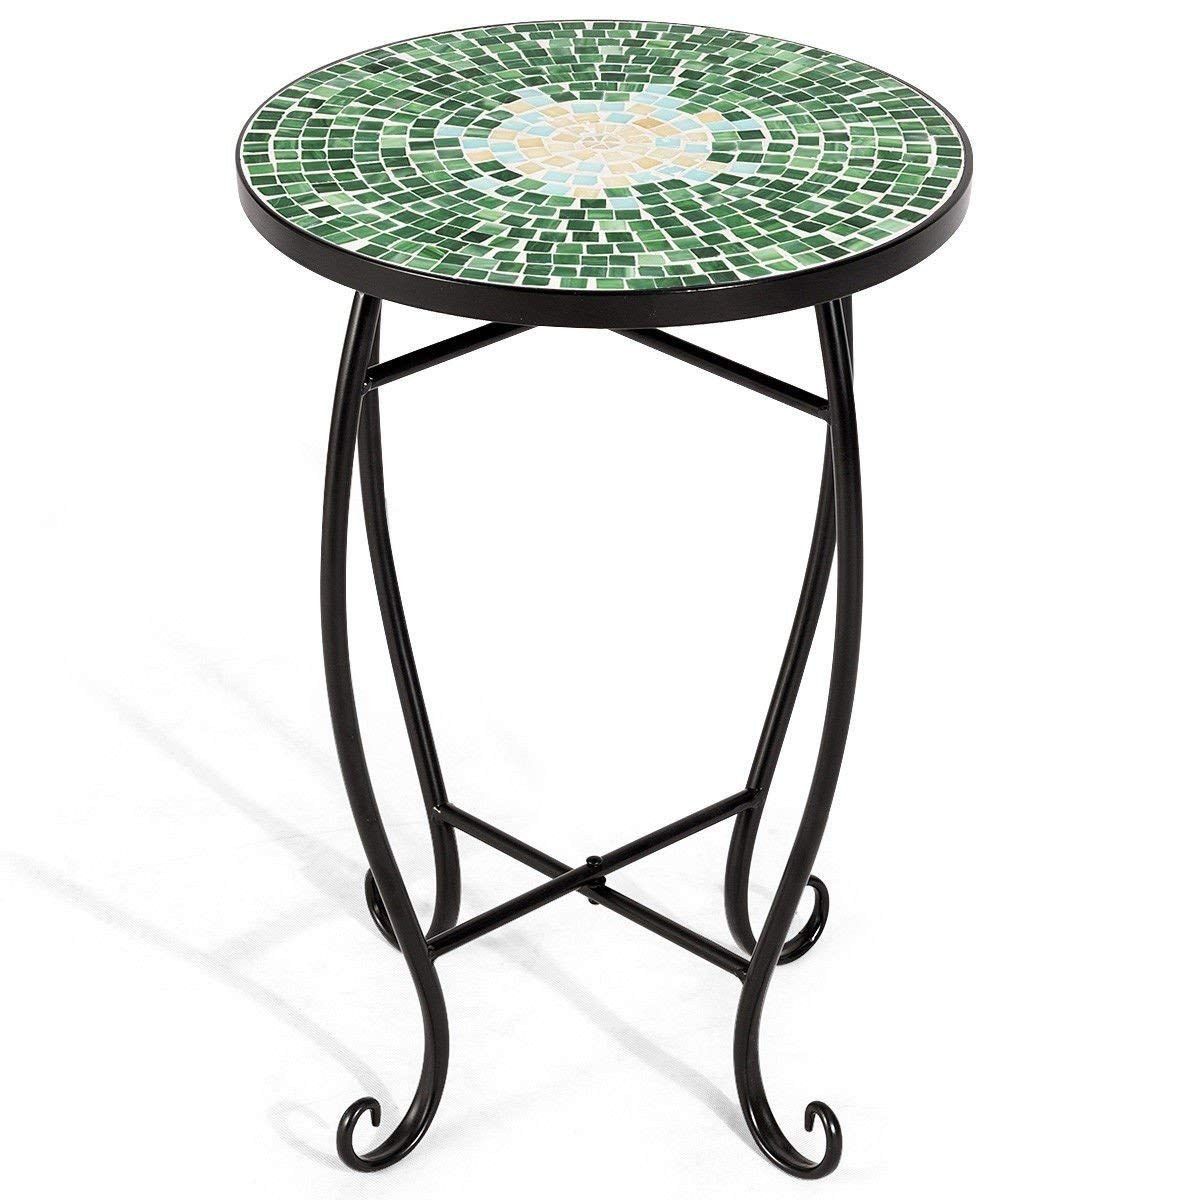 custpromo mosaic accent table metal round side bella green outdoor plant stand cobalt glass top indoor garden patio living room furniture end tables blue trunk pottery barn floor